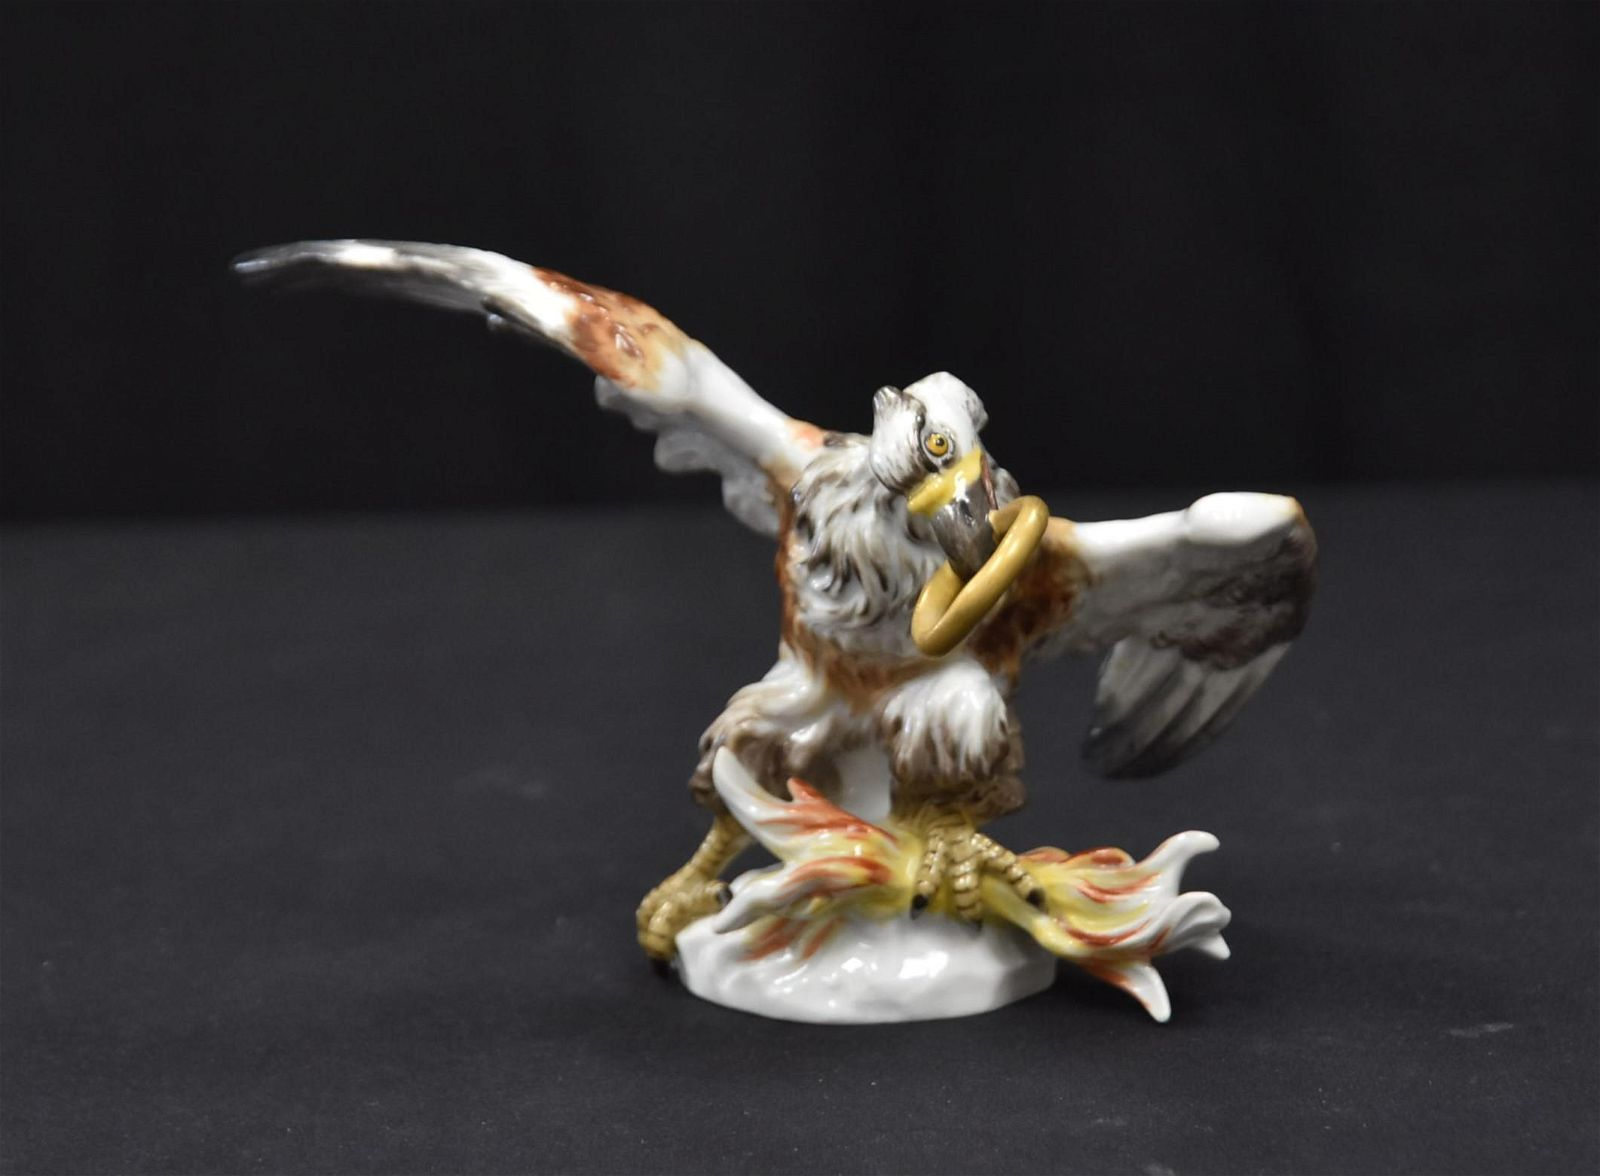 MEISSEN PORCELAIN EAGLE WITH RING IN MOUTH